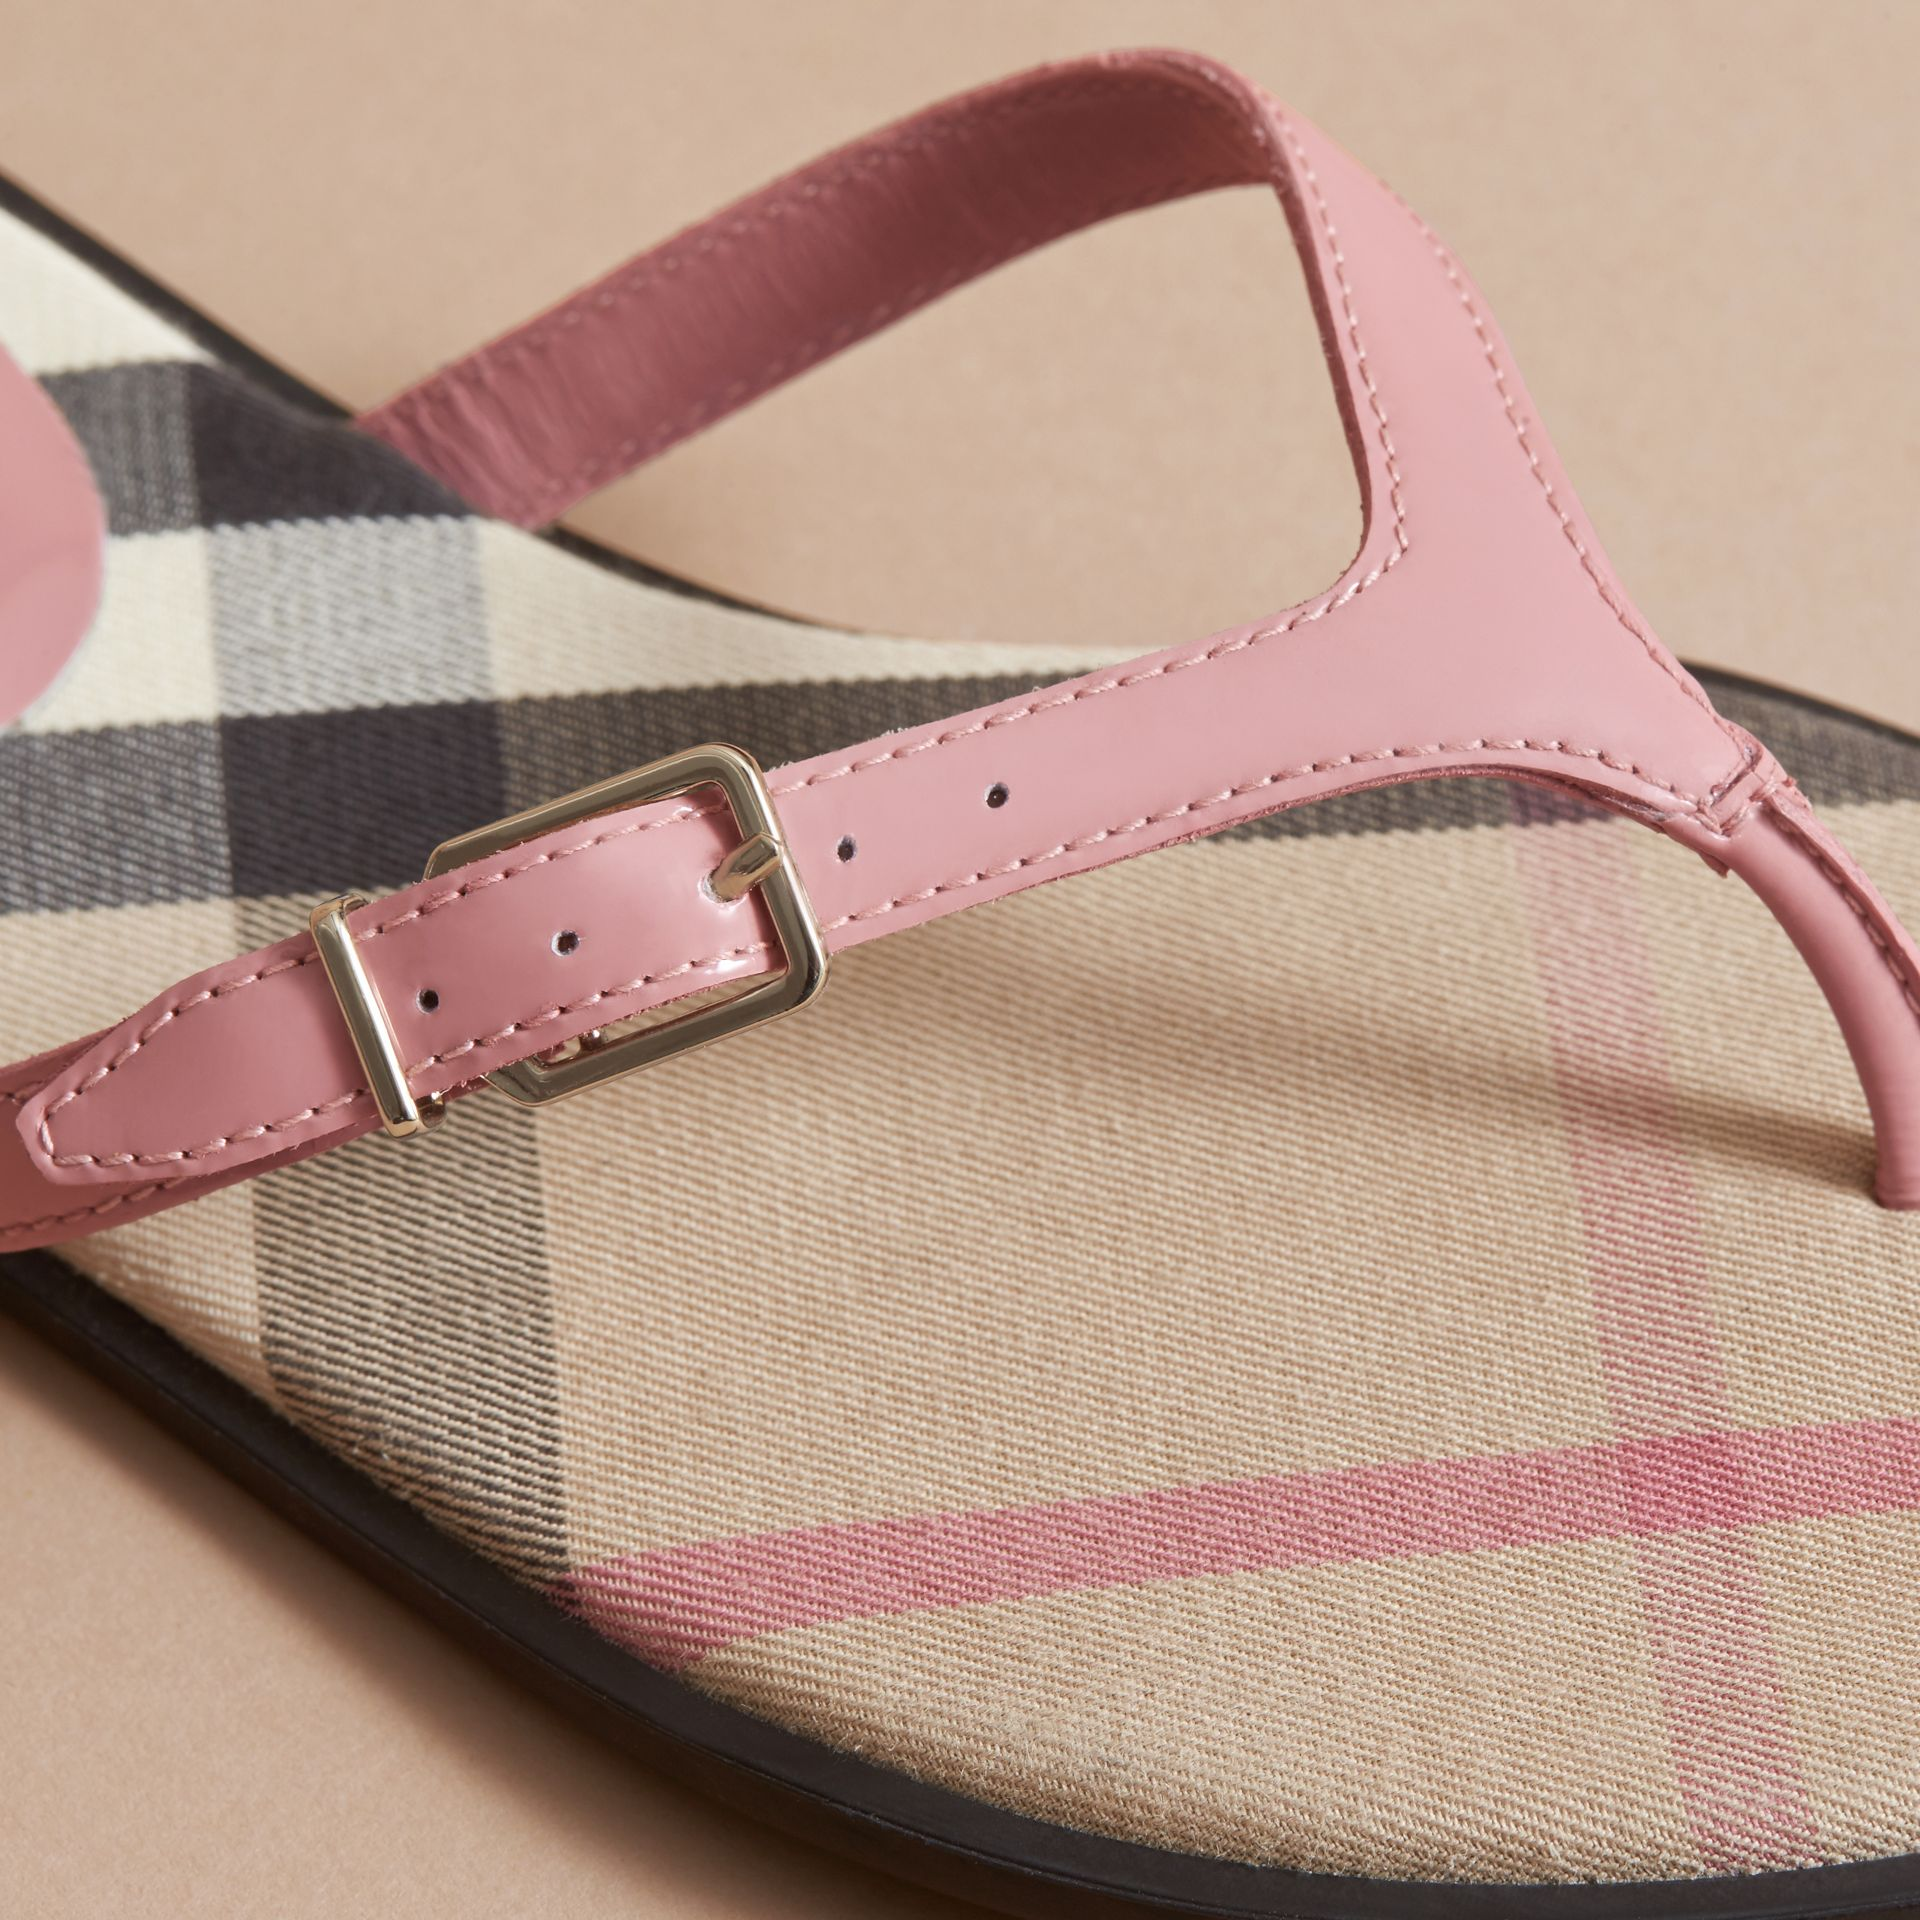 House Check and Patent Leather Sandals in Nude Pink - Women | Burberry - gallery image 2